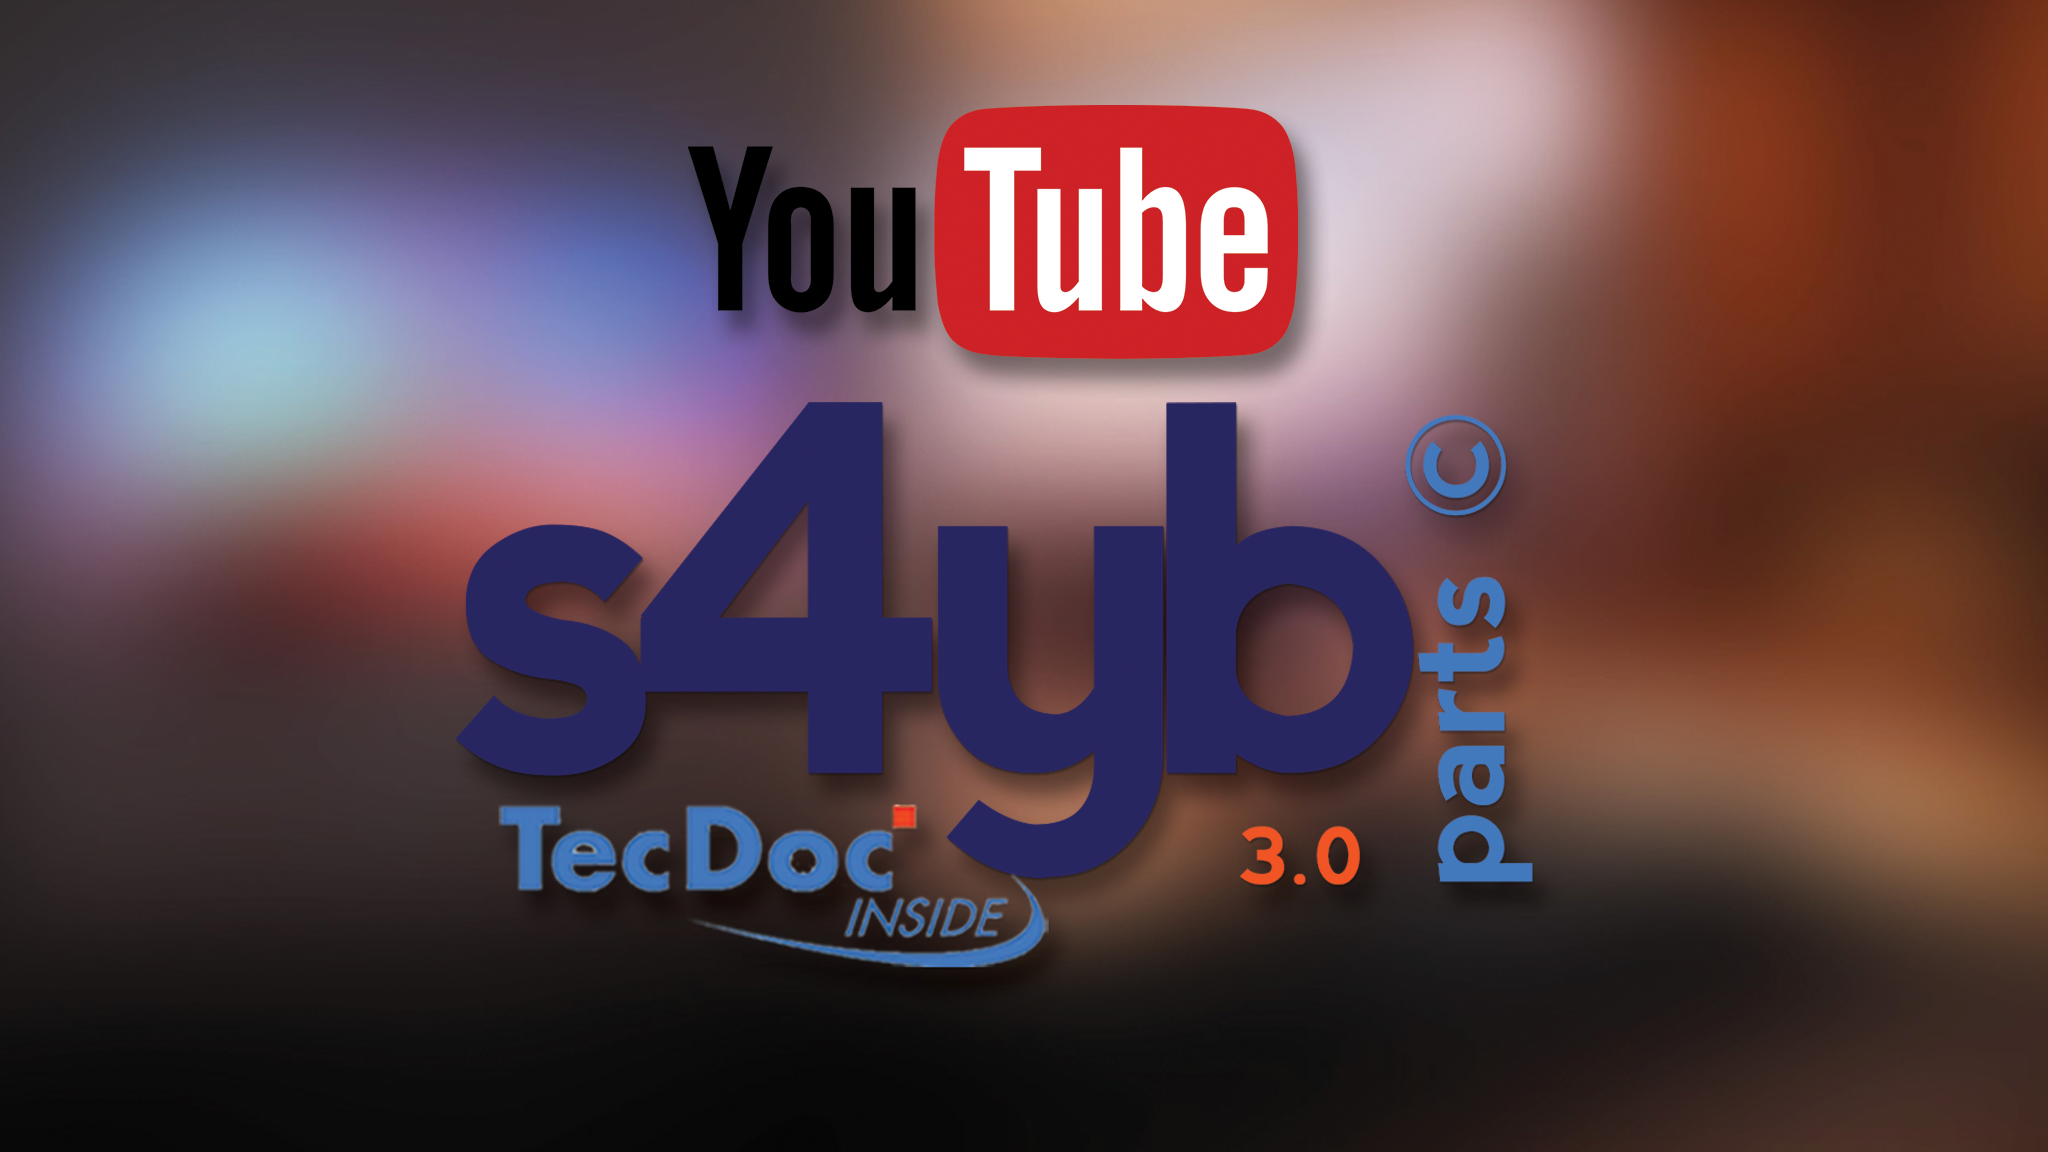 s4yb parts TecDoc Youtube